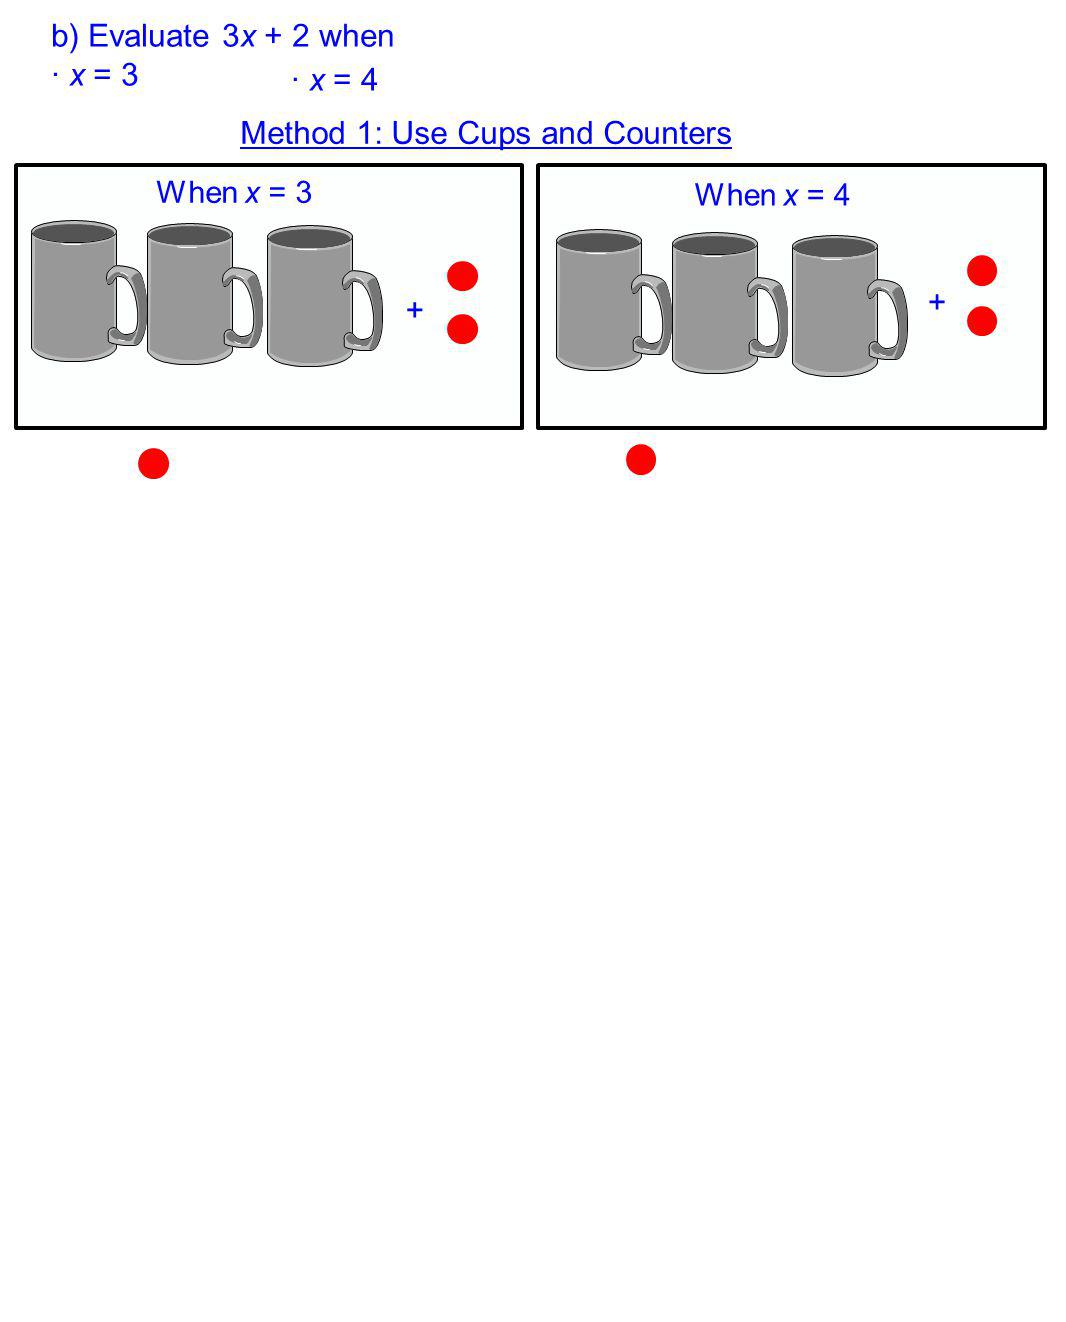 Method 1: Use Cups and Counters